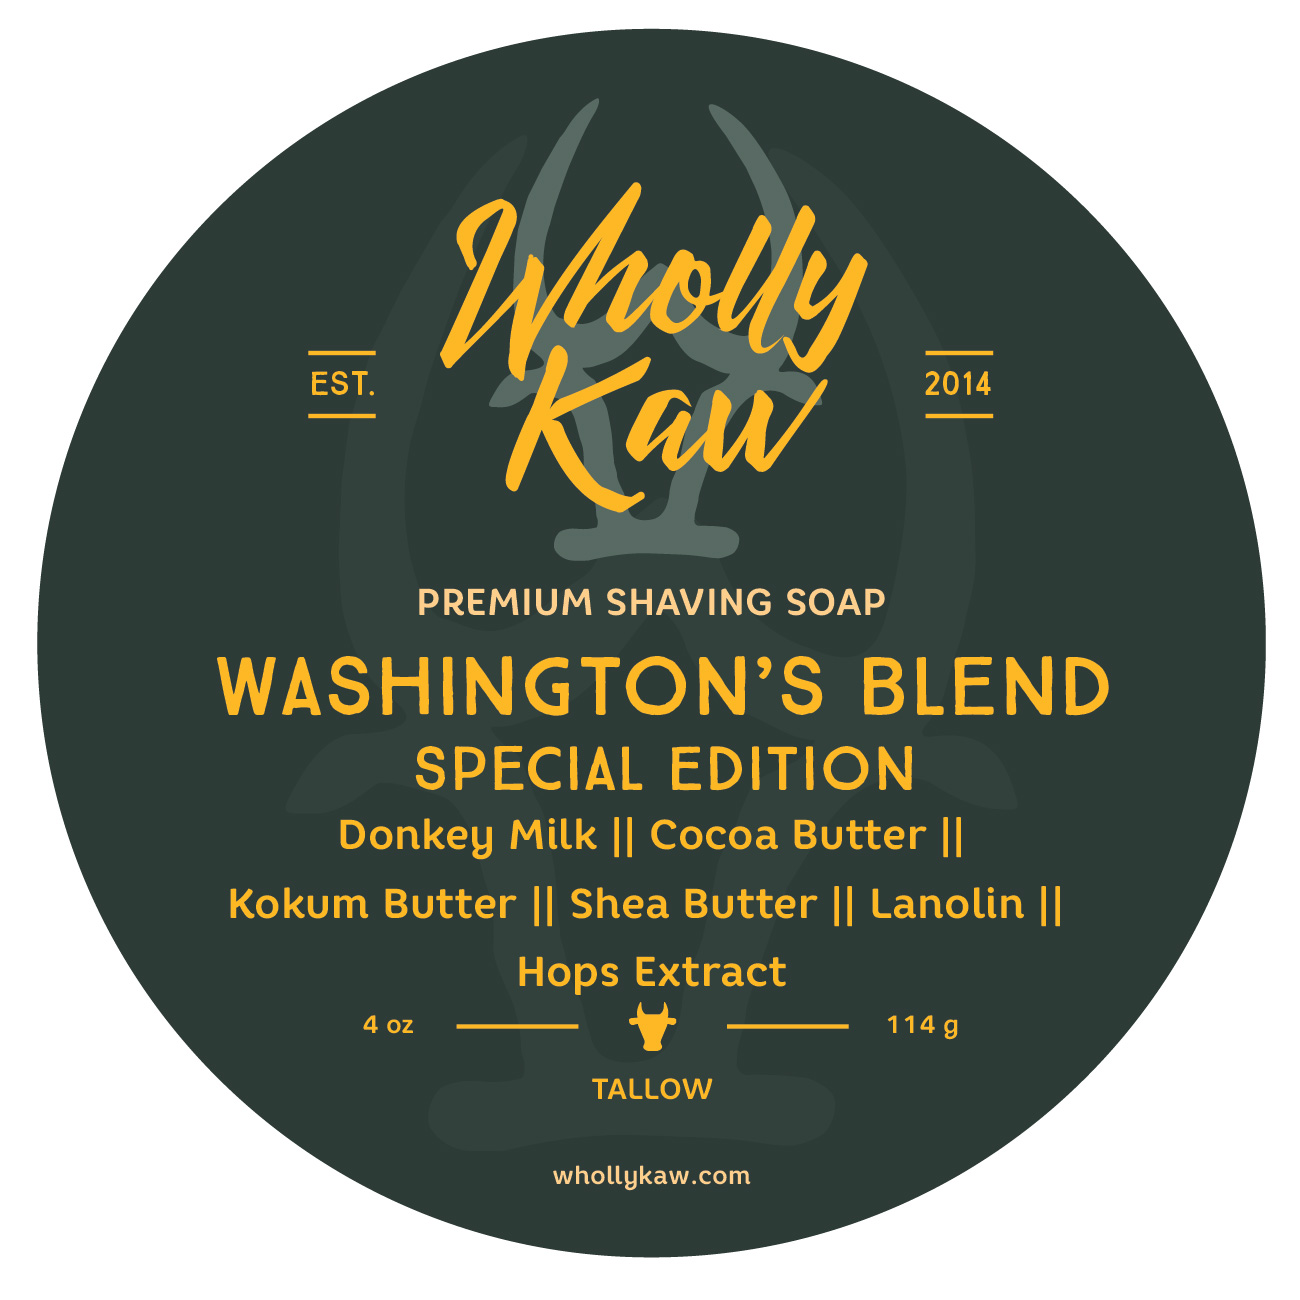 Wholly Kaw - Washington's Blend - Soap (LE) image